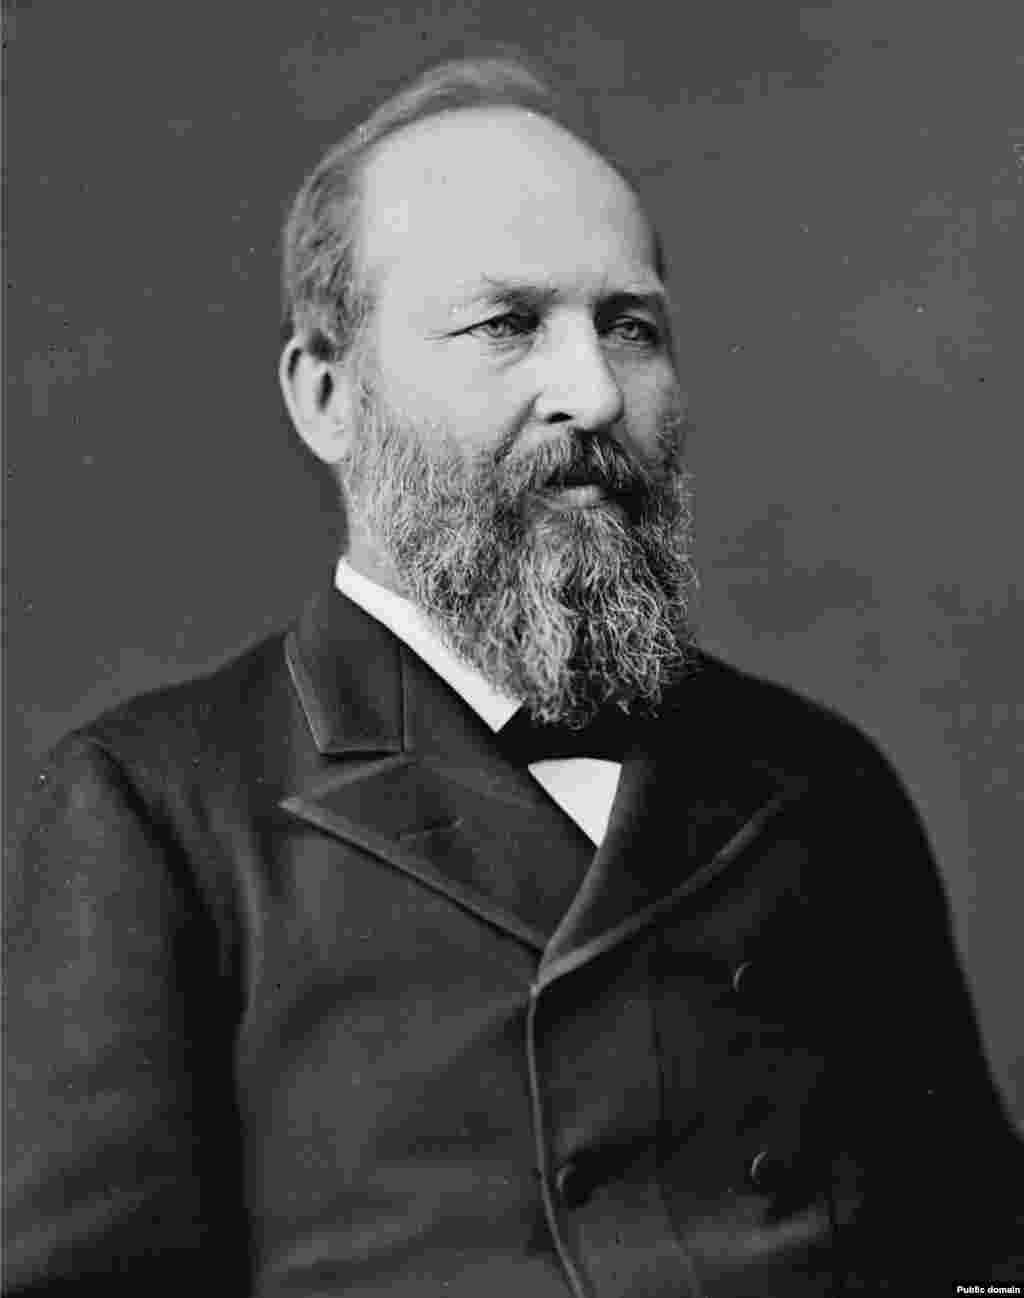 U.S. President James Garfield was shot by a lone assassin in Washington, D.C., on July 2, 1881. - Garfield's killer, Charles Guiteau, was angry over his failure to be appointed to a federal post. Garfield, a bullet still lodged somewhere in his torso, died on September 19 of complications related to the shooting.